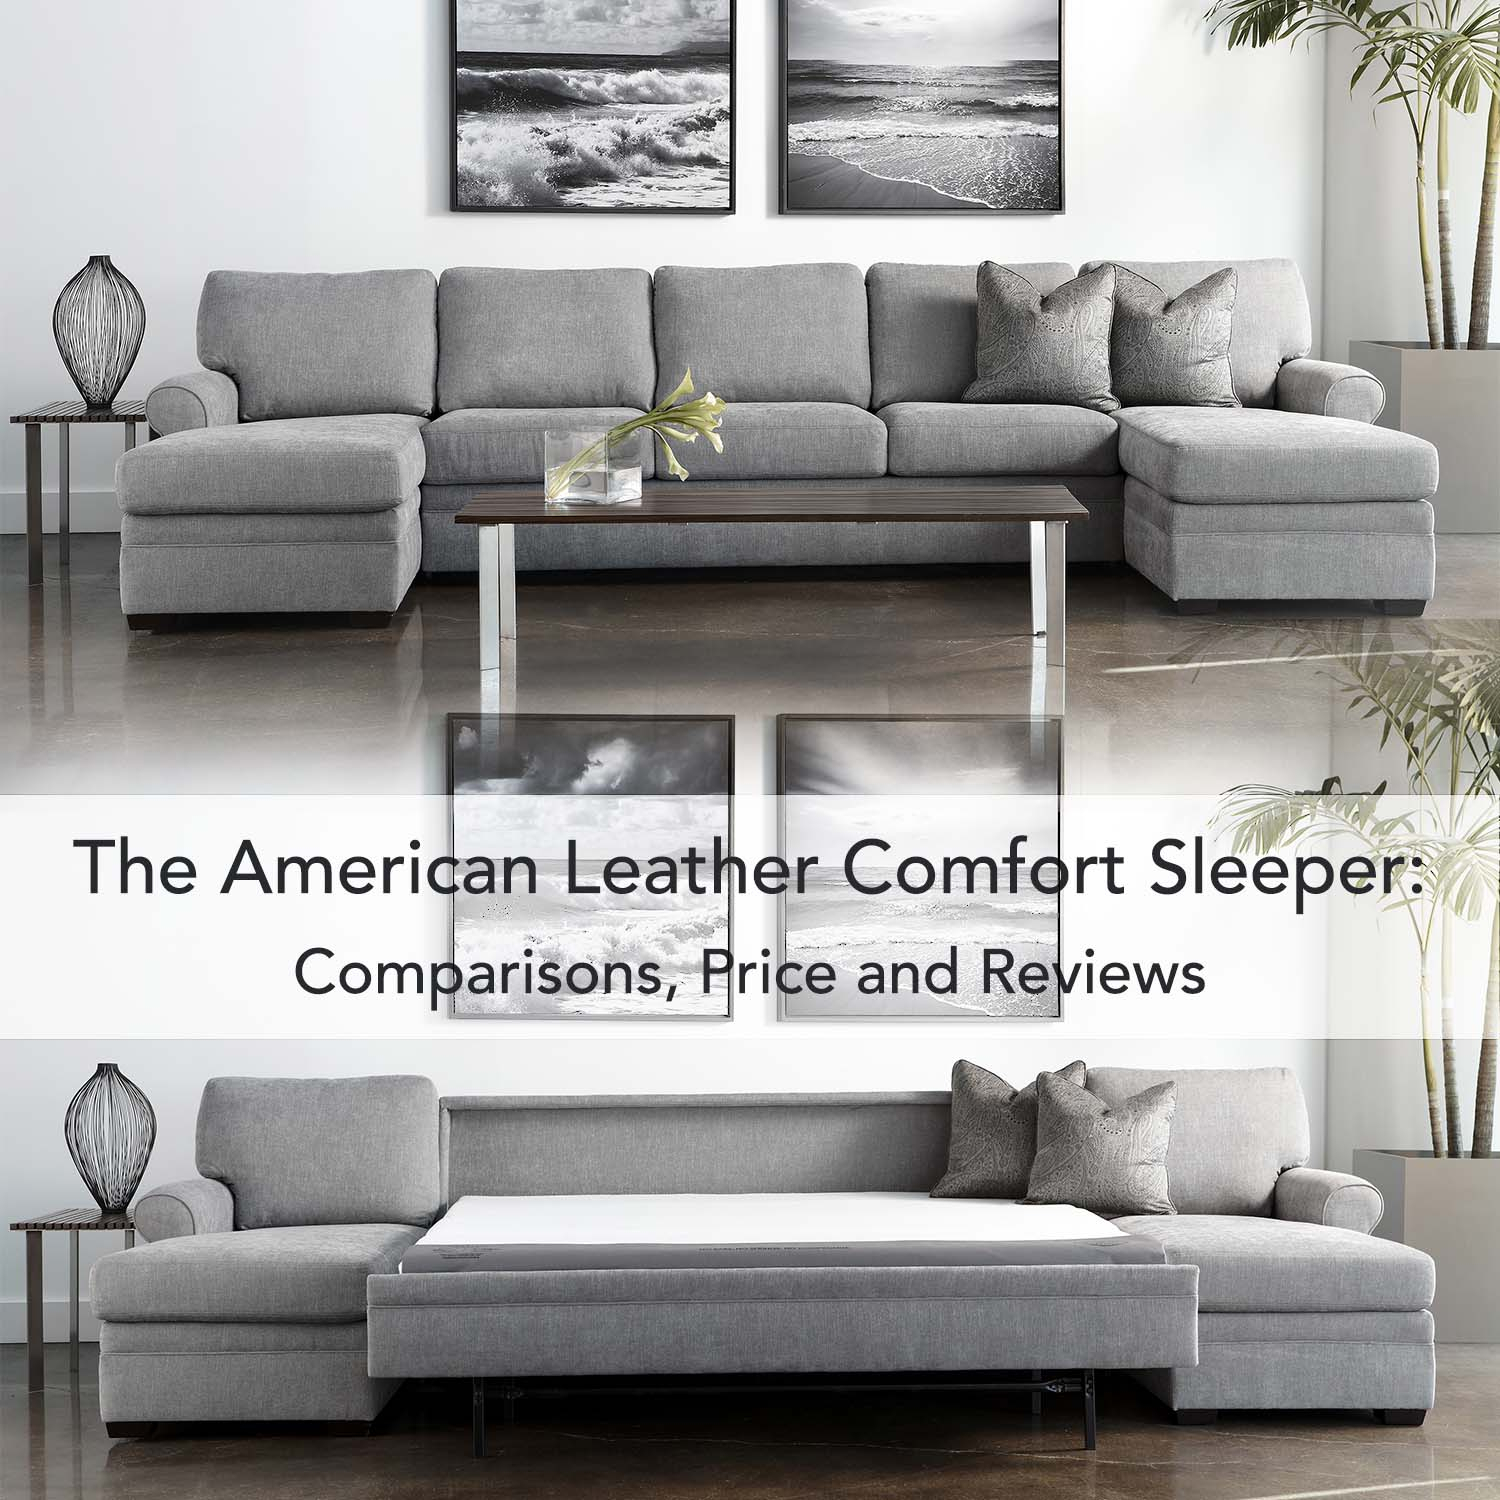 American Leather Comfort Sleeper: What To Know Before You Buy Within Gina Blue Leather Sofa Chairs (View 14 of 25)